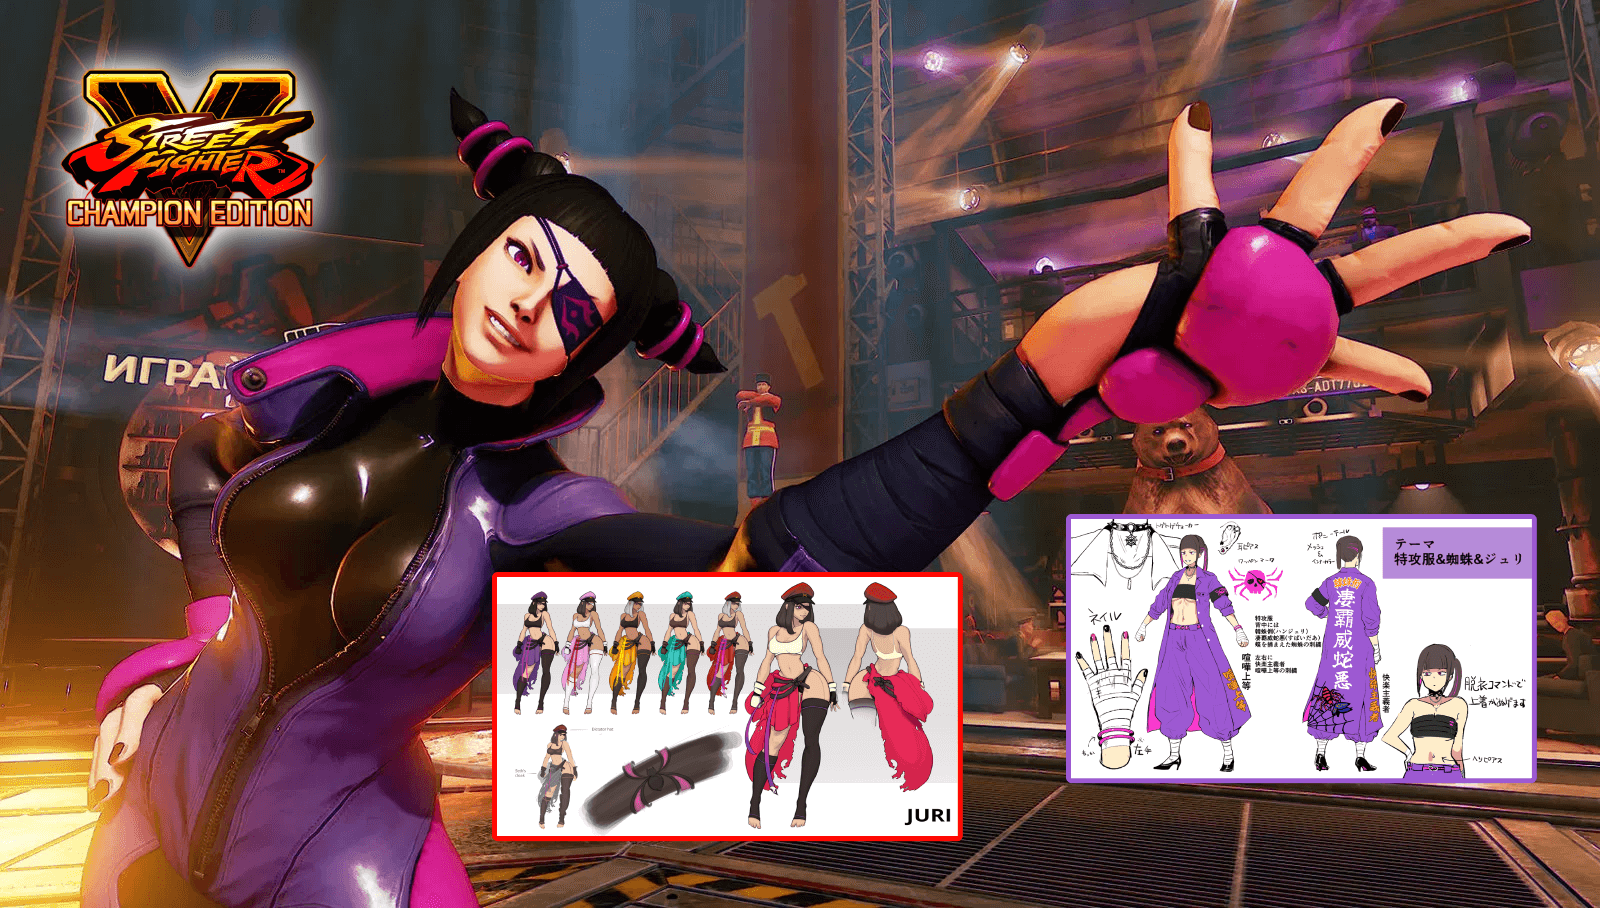 Two Winners of the Street Fighter V: Costume Design Contest